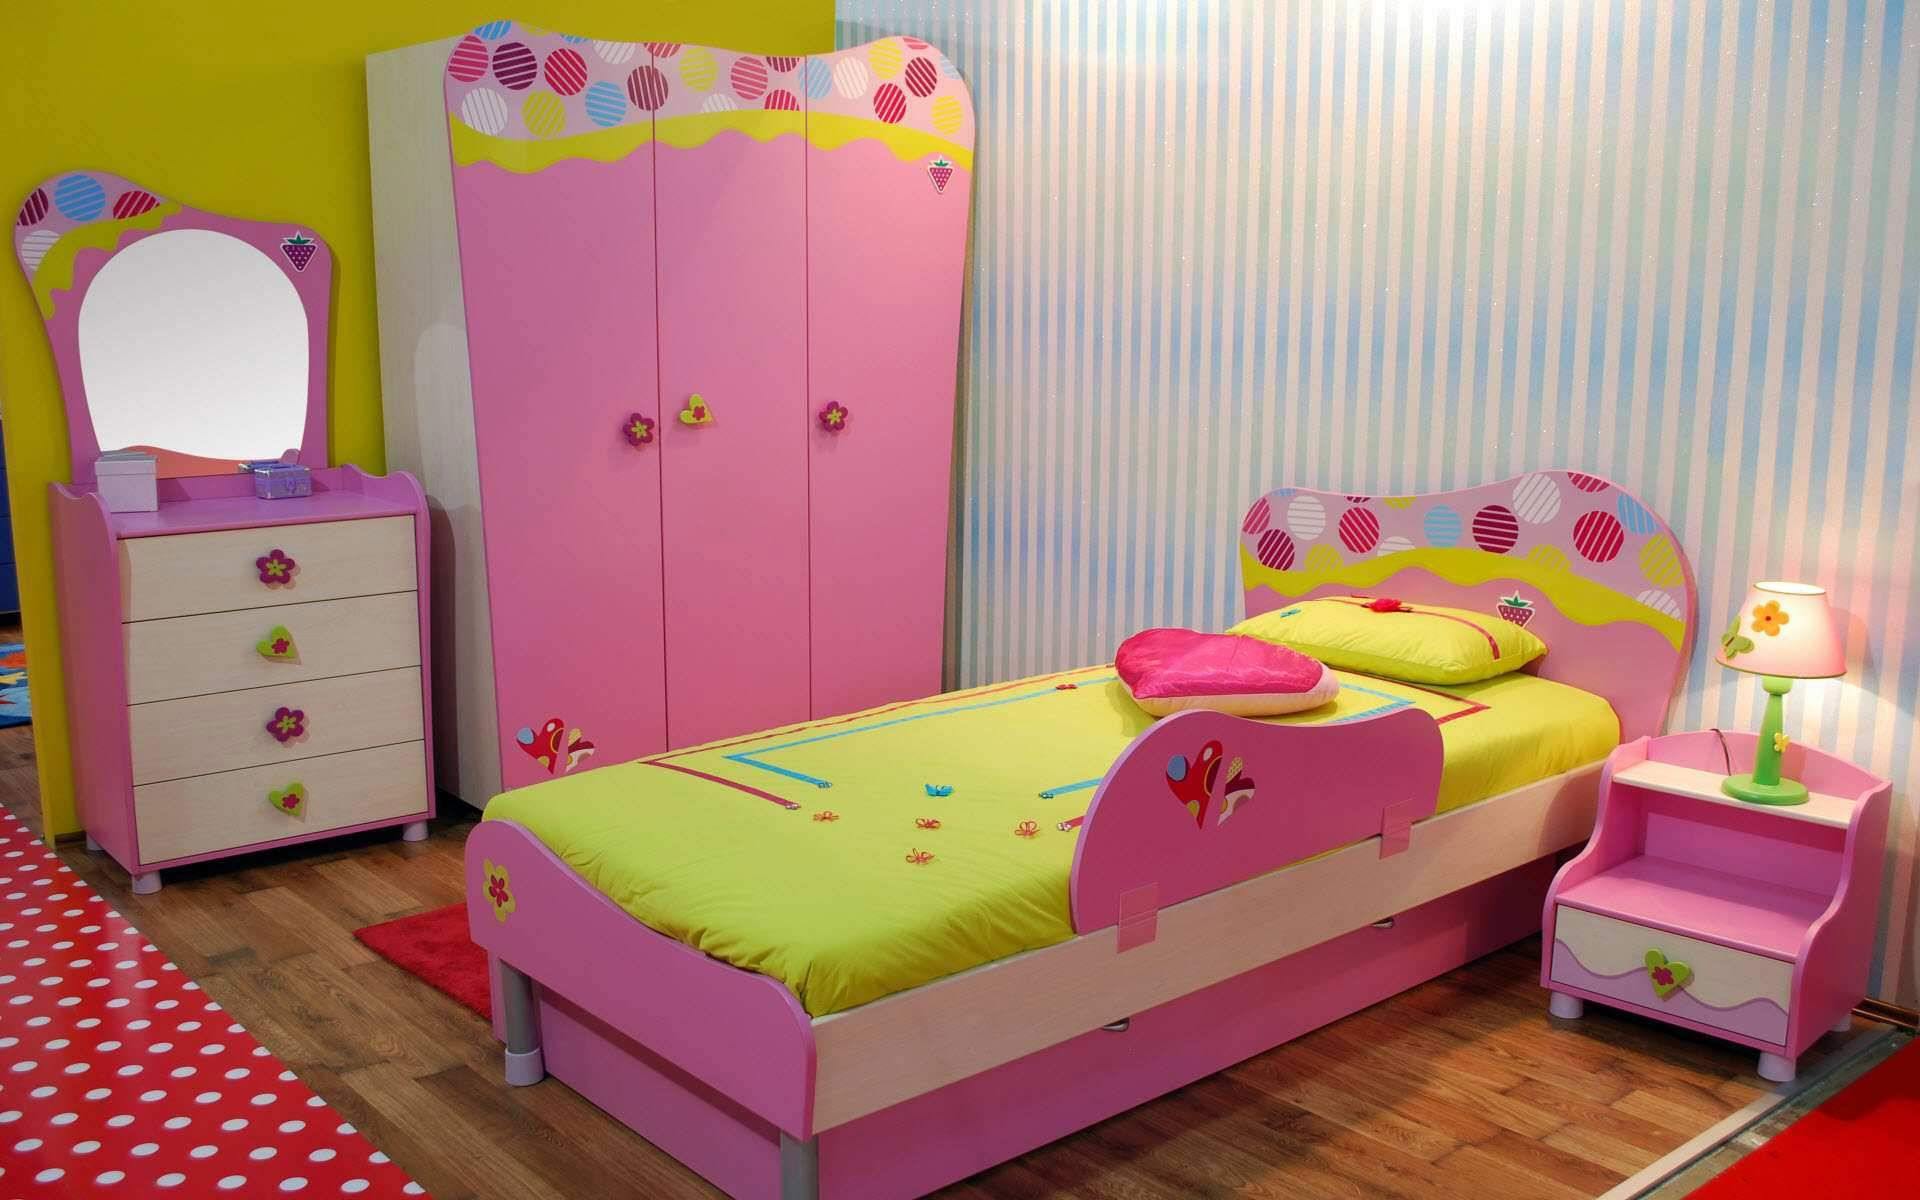 Kid Bedroom Pink Bedroom Furniture Set Theme For Your Kids How To ...